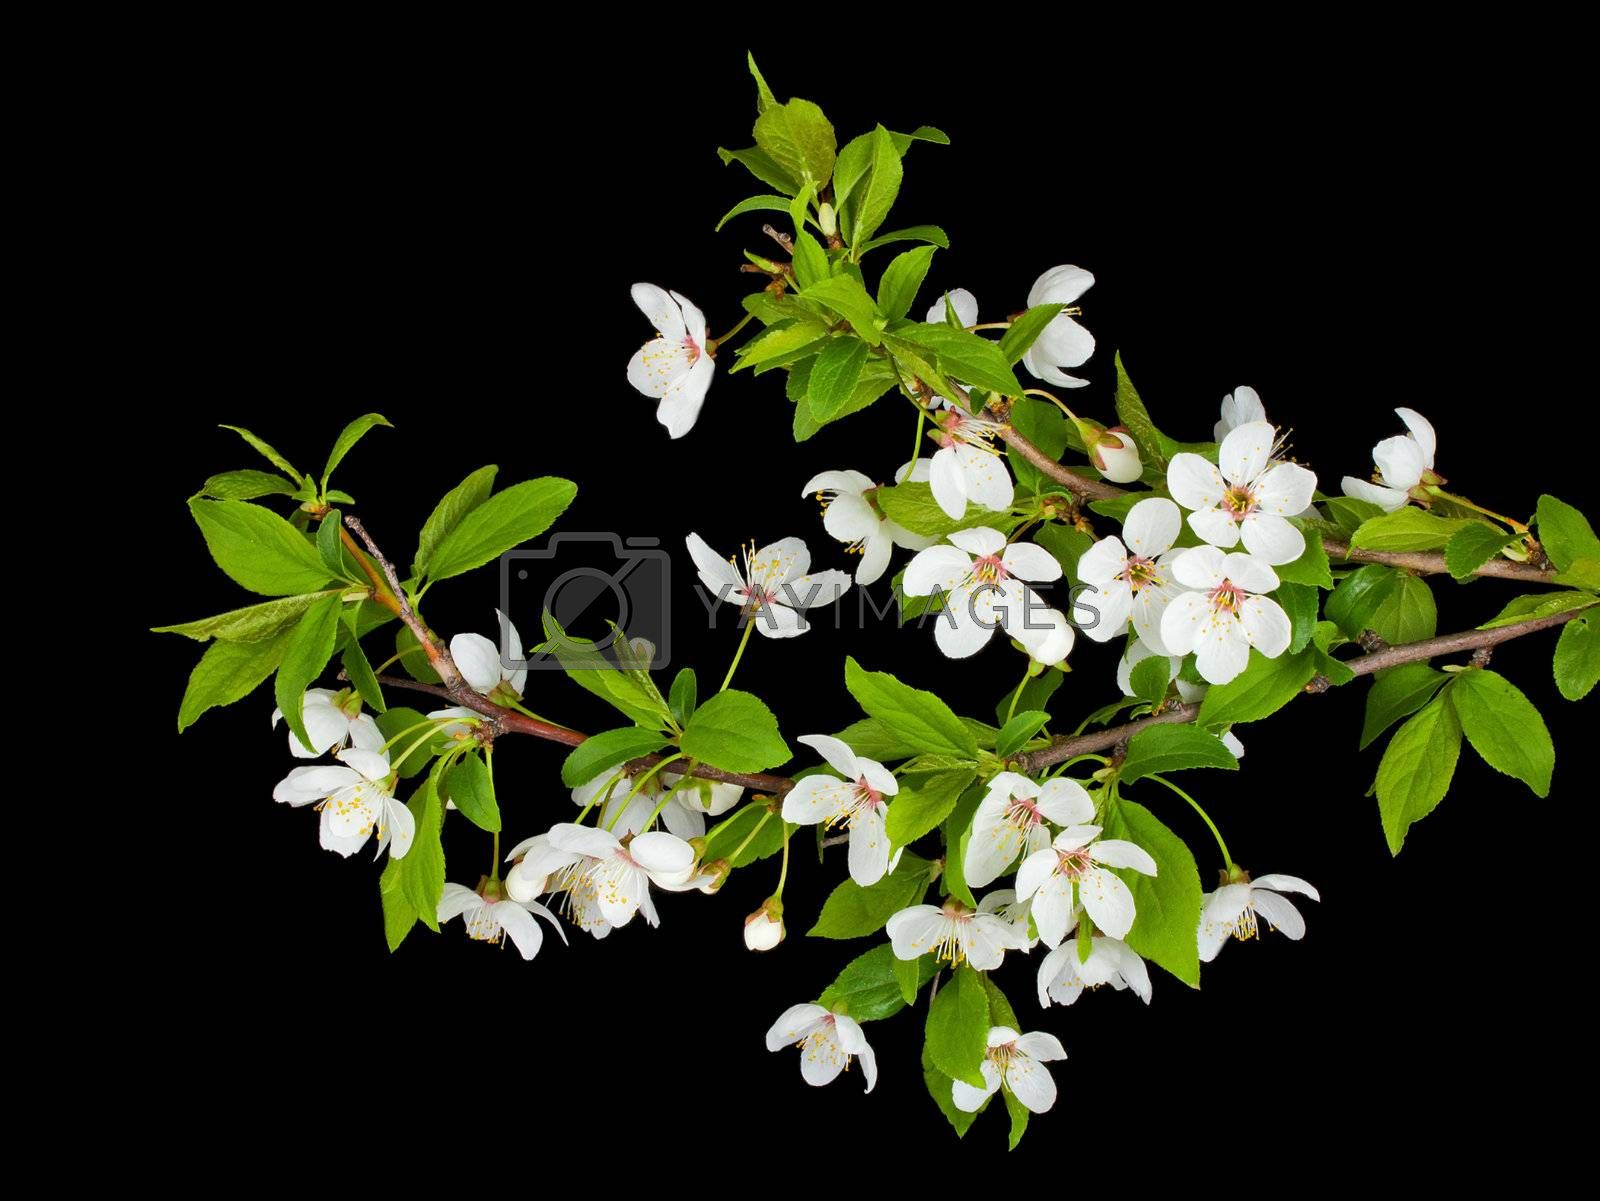 blooming branches of plum tree by Alekcey